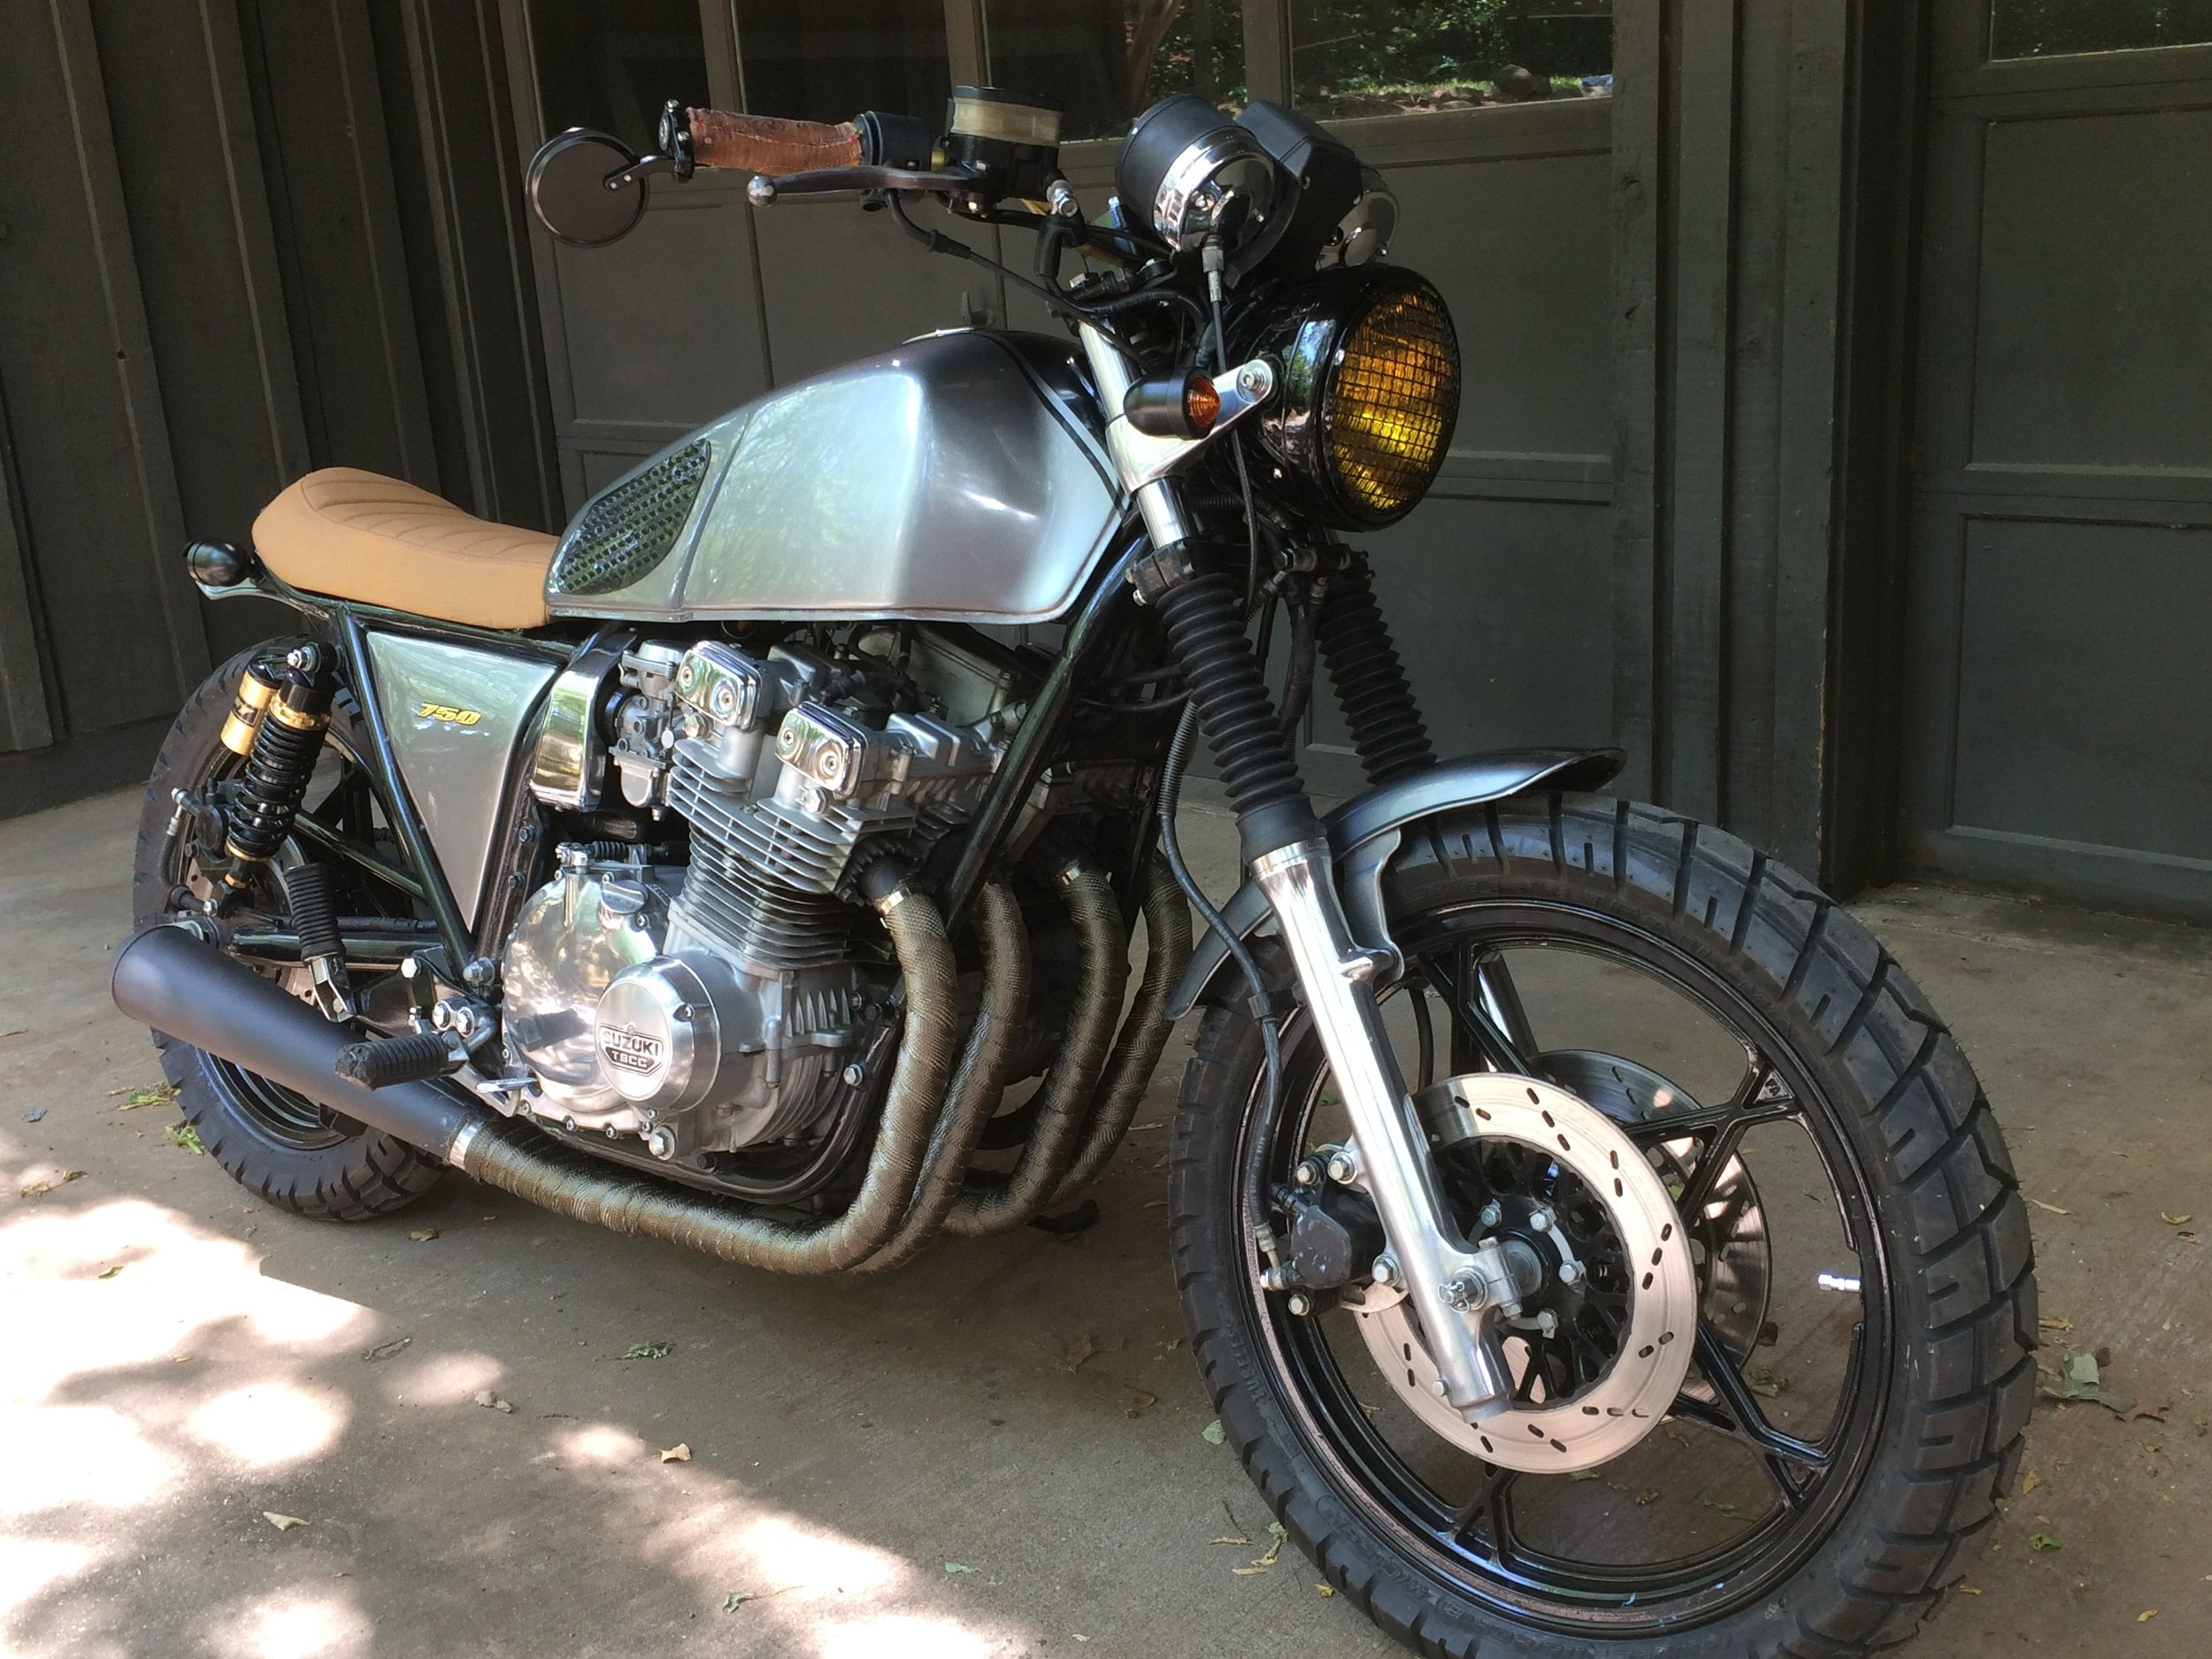 The Suzuki GS750 project completed.